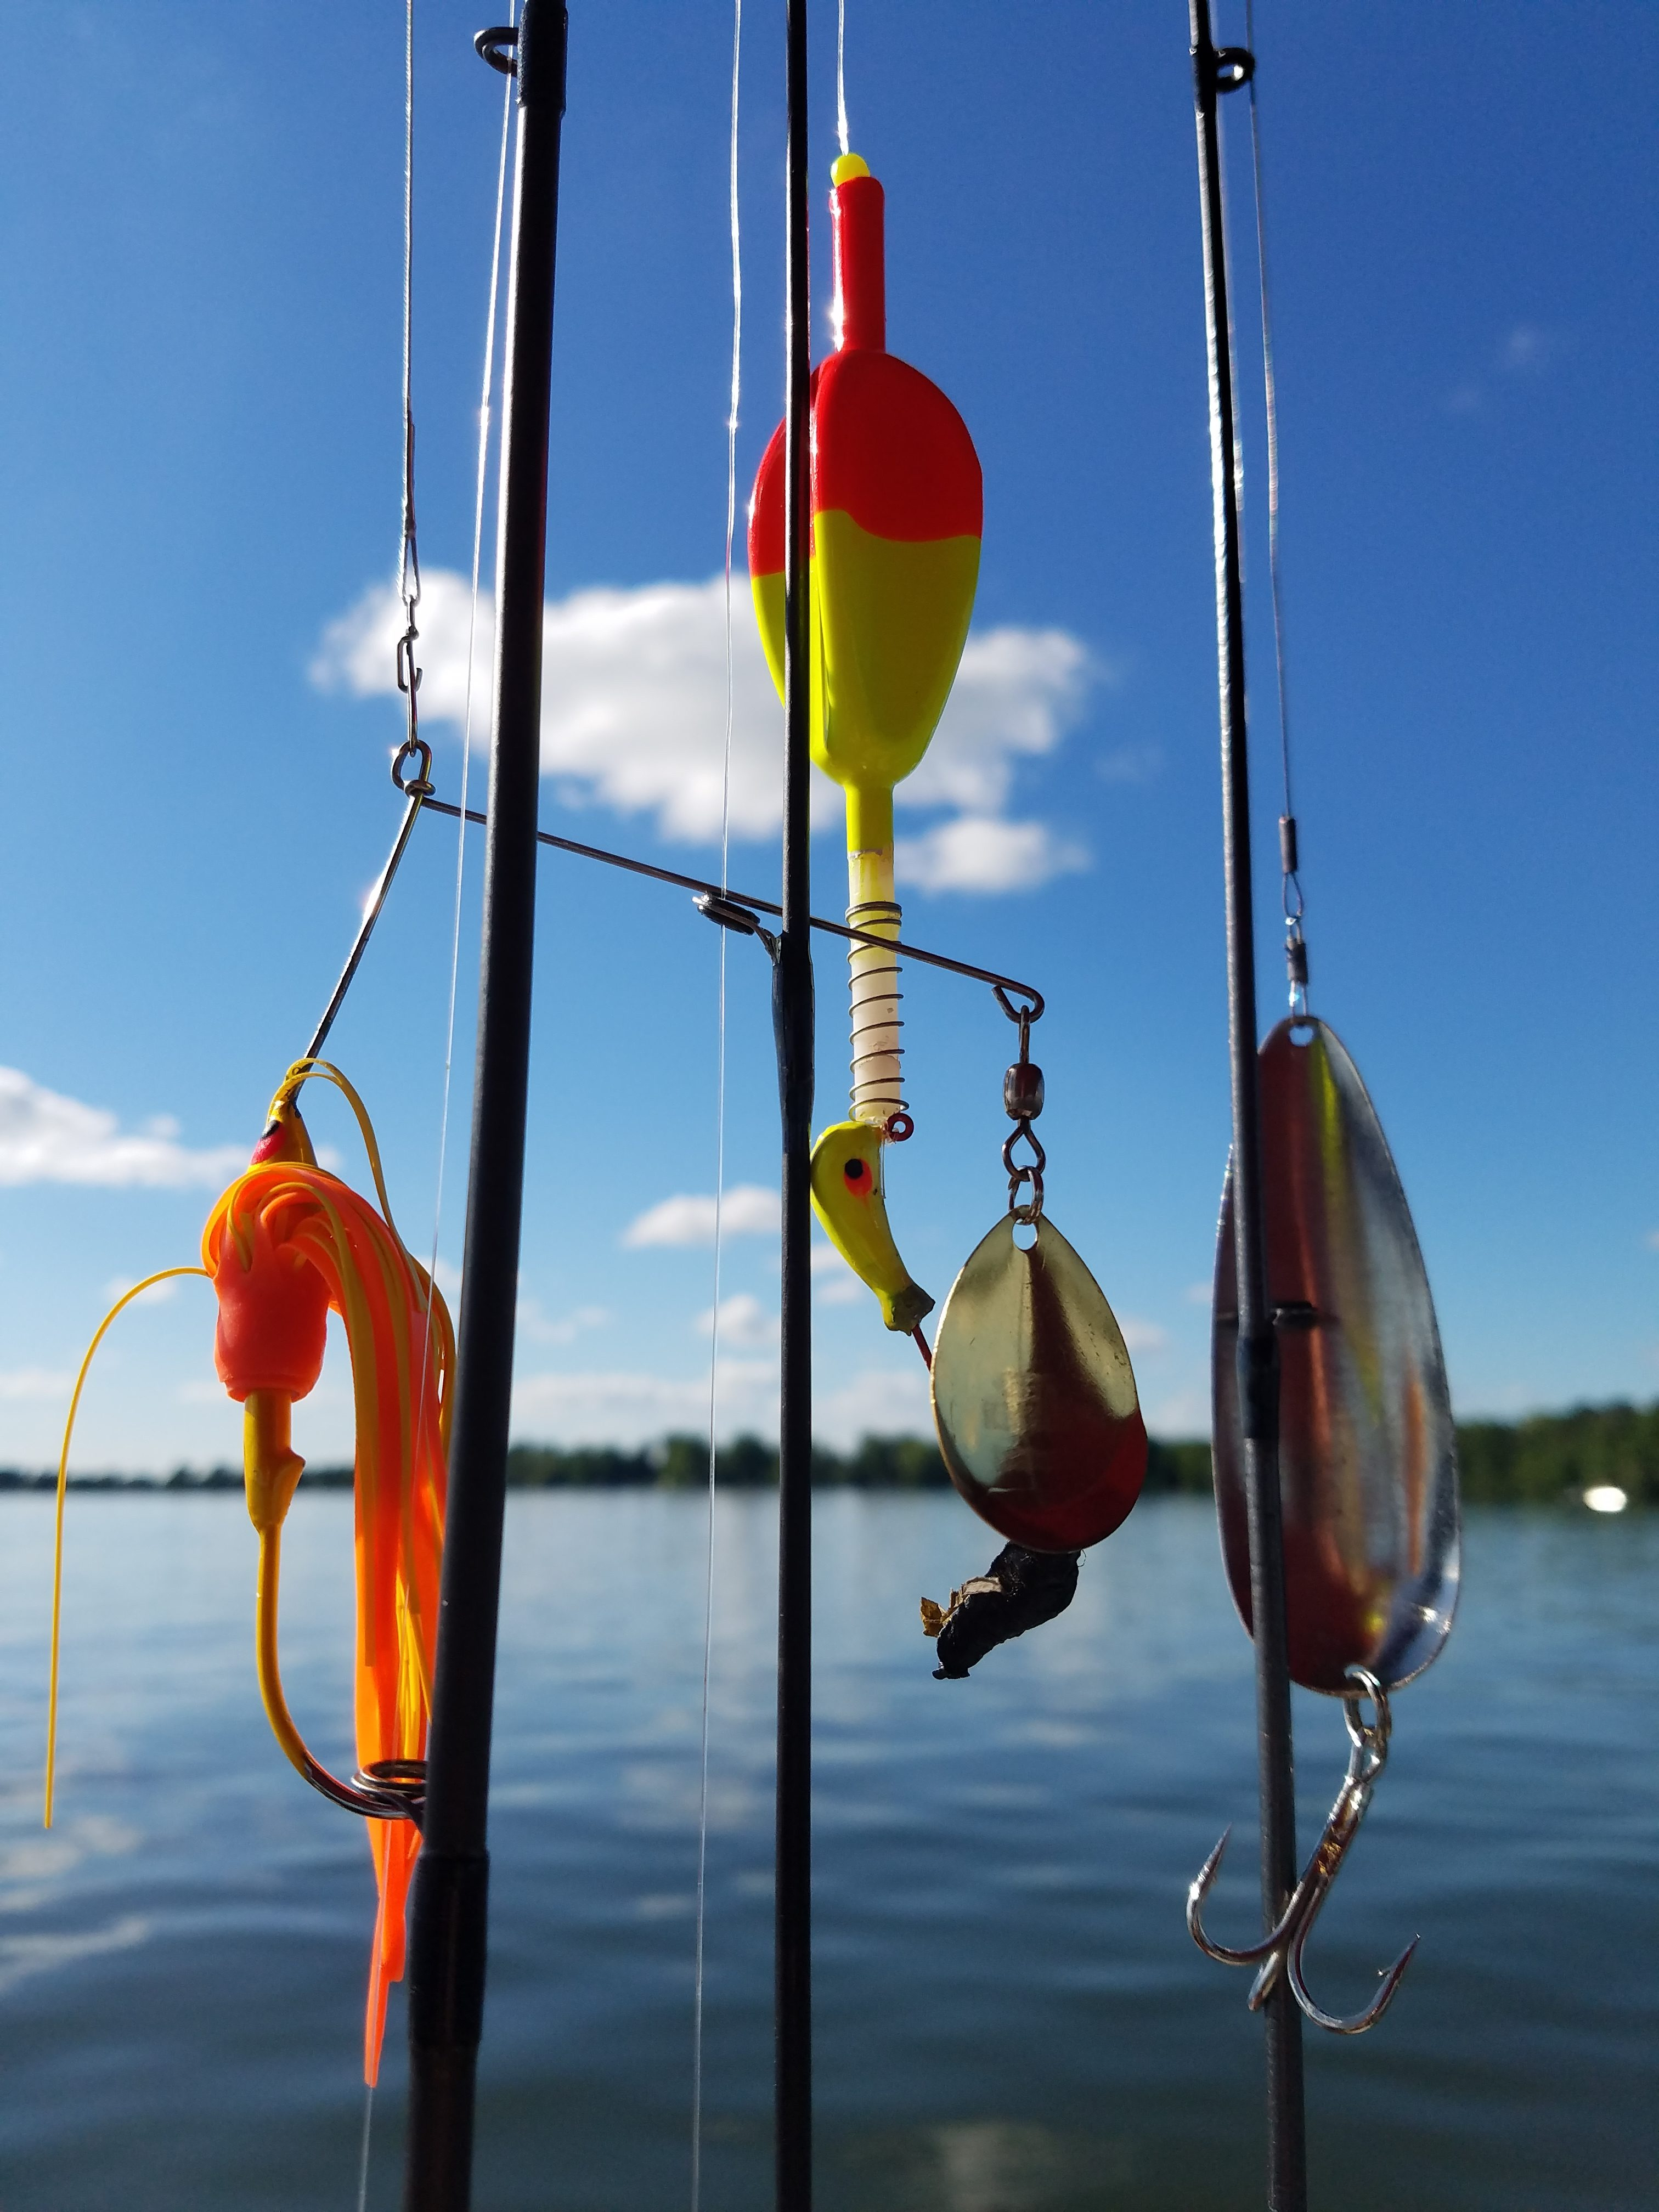 Fishing poles and lures